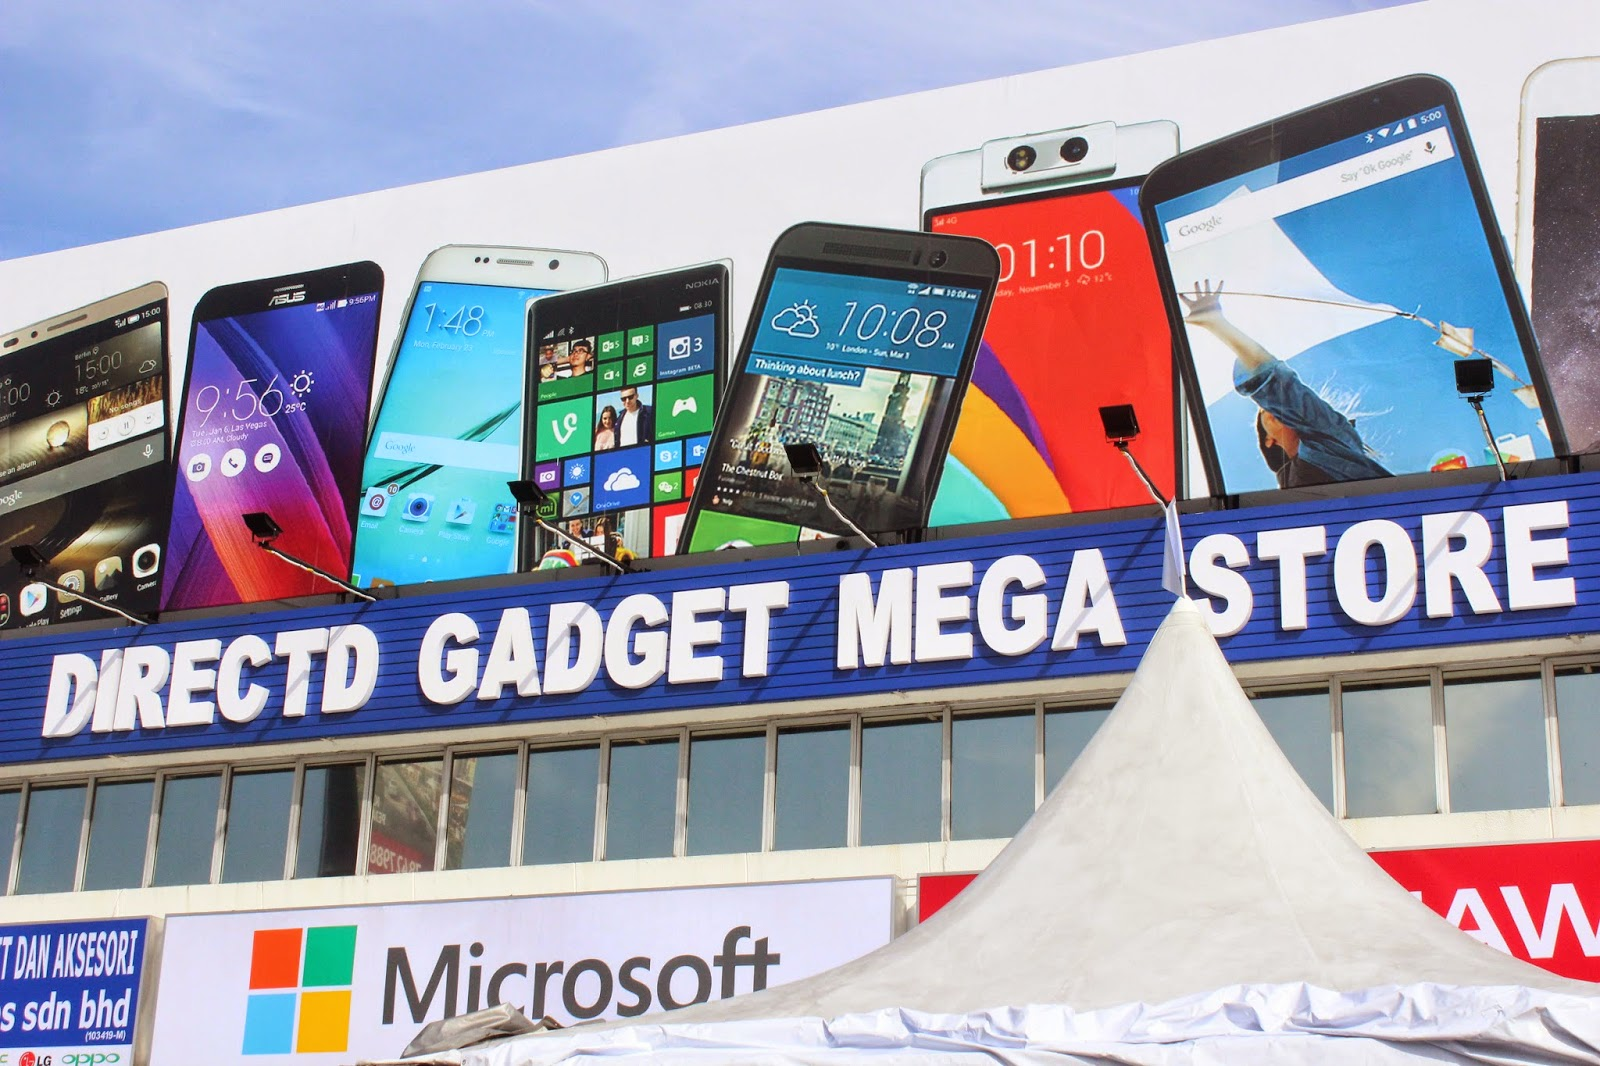 Evergreen love the grand opening of huge directd mega tech store directd gadget mega store business operates from 9am to 930pm and it is open daily throughout the year even on weekends and public holidays sciox Images